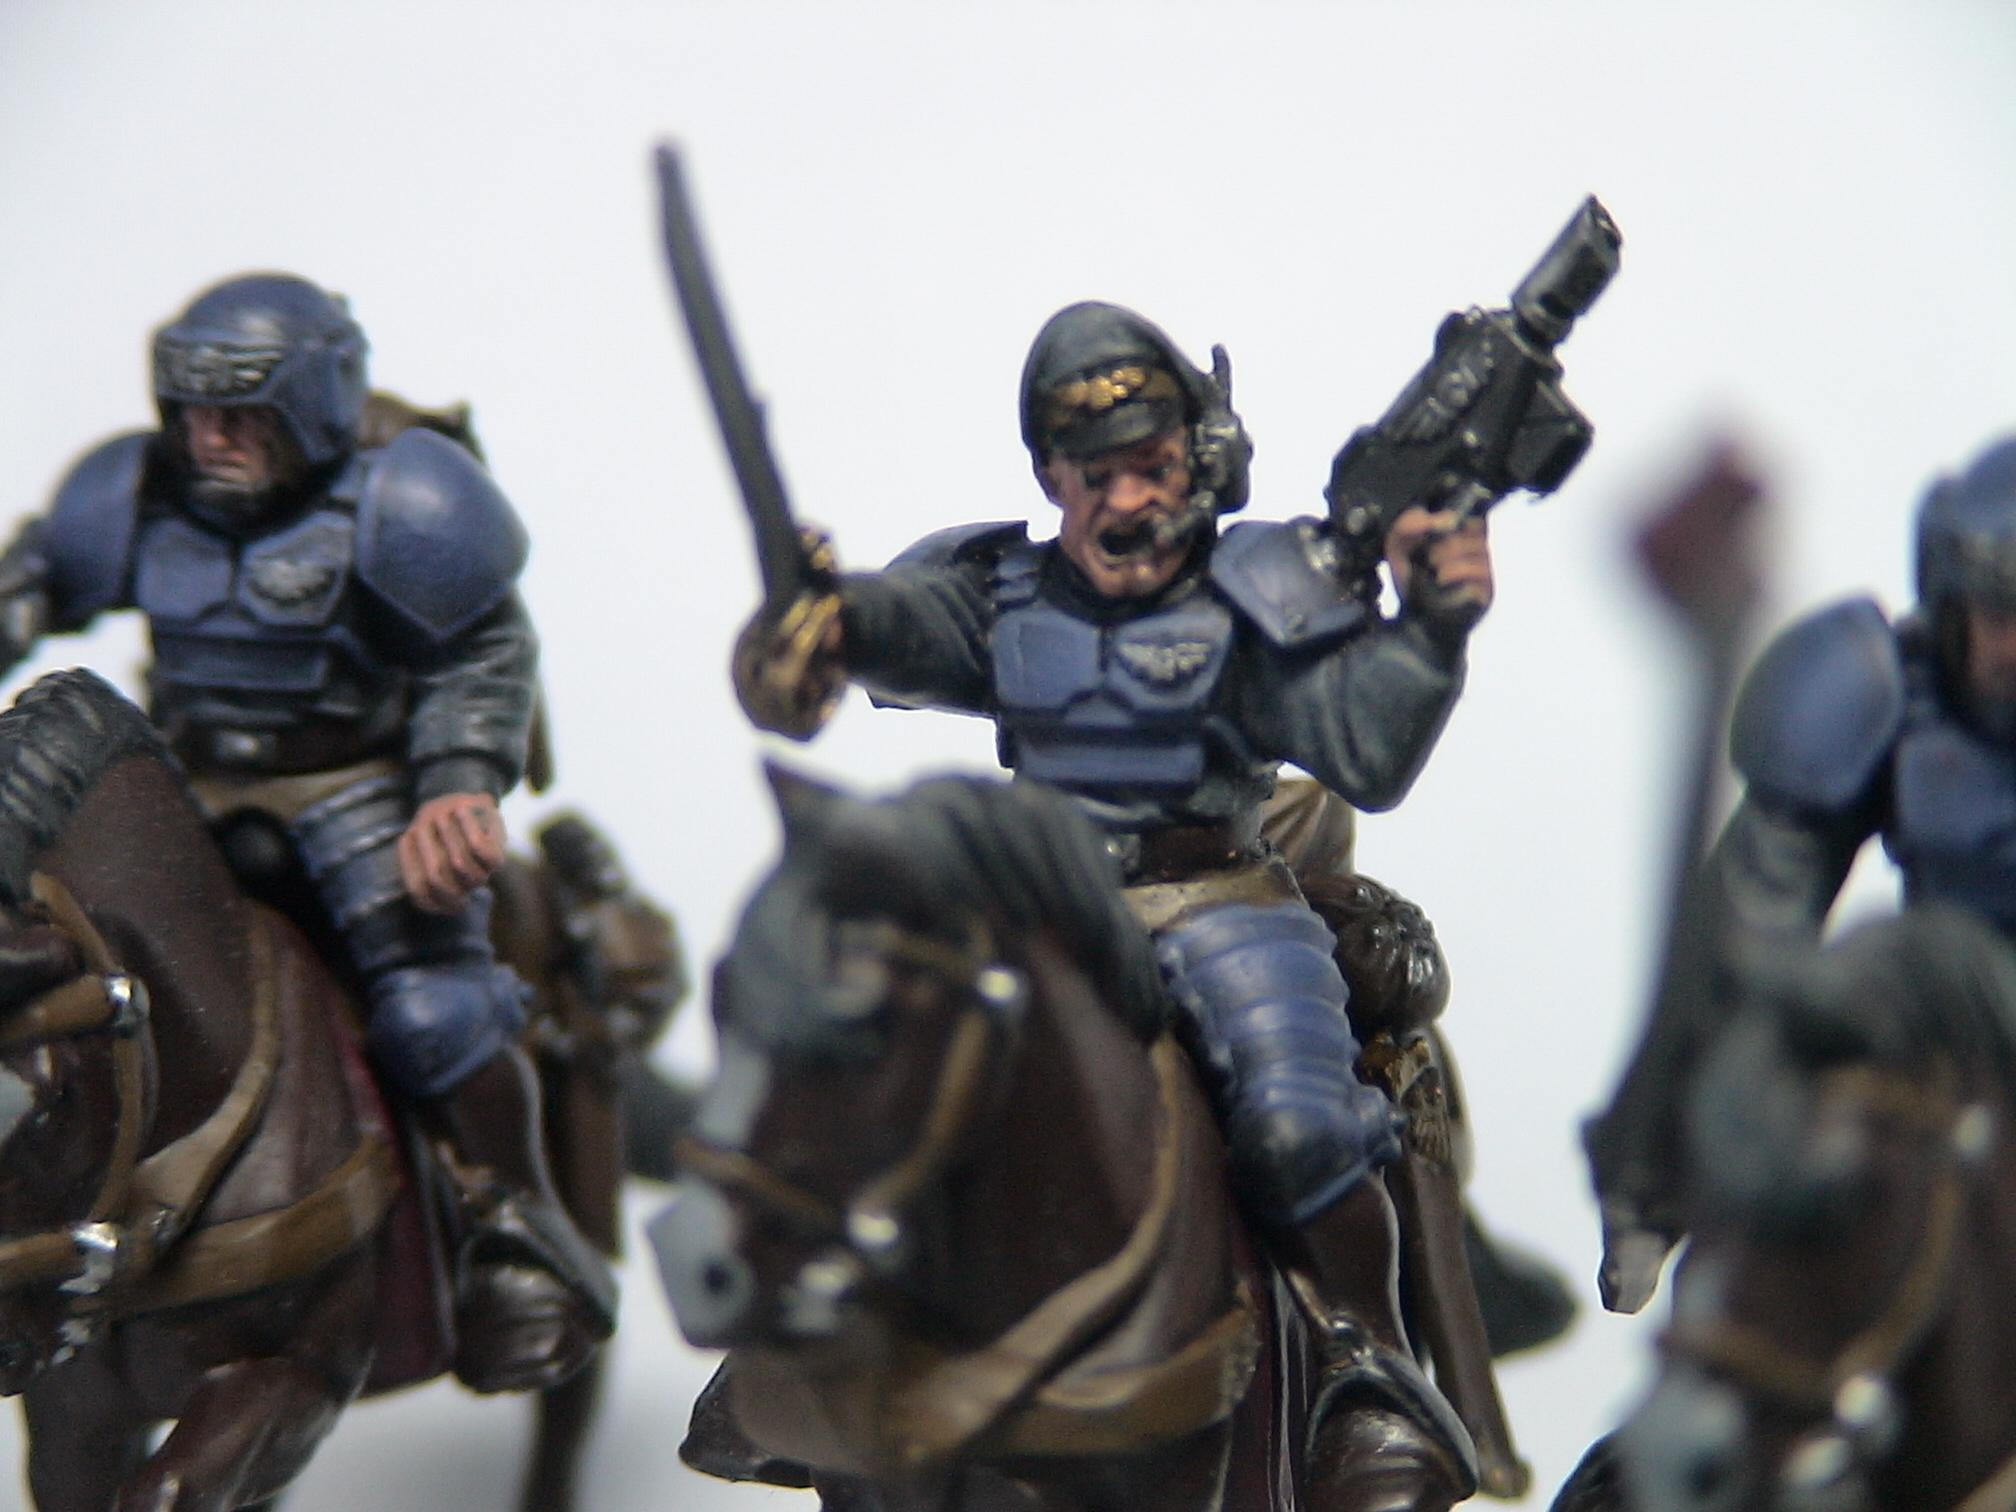 Cities Of Death, Imperial Guard, Rough Riders, Street Fight